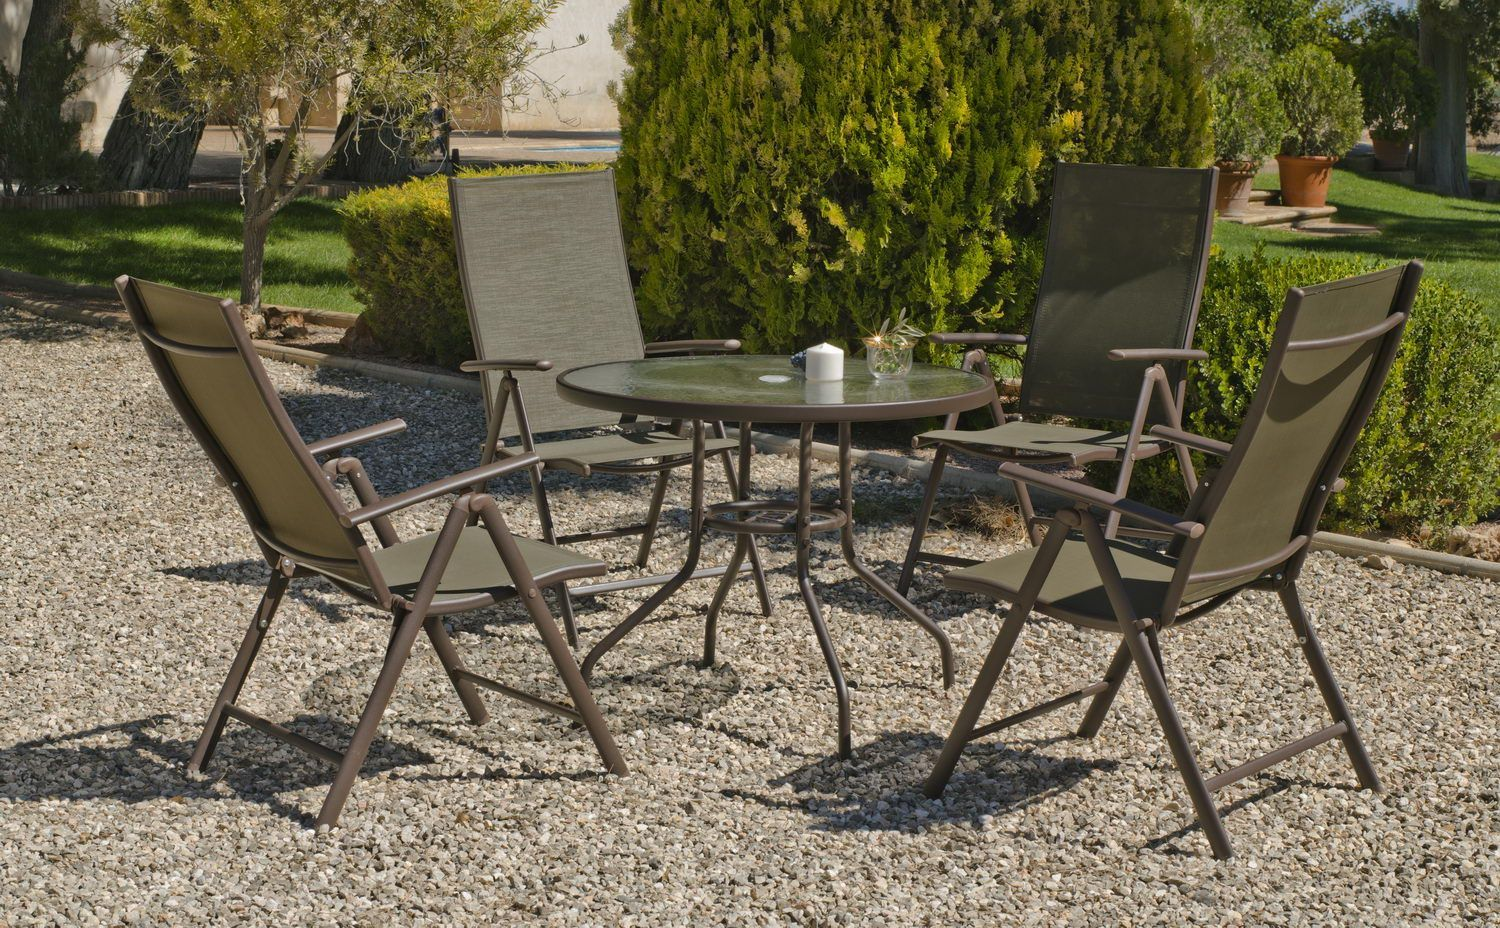 Salon de jardin Provence 1 table + 4 fauteuils multipo